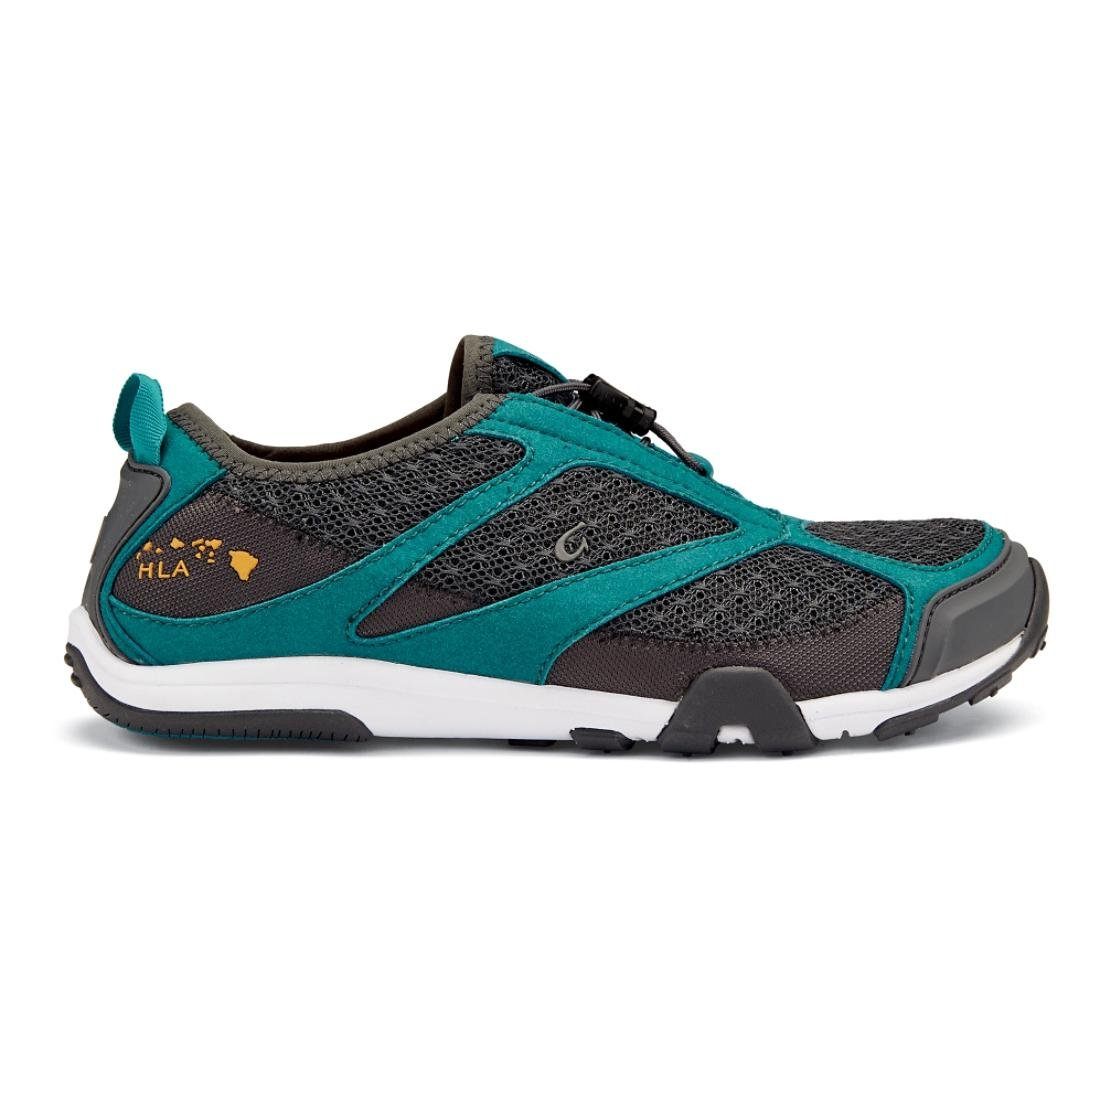 OLUKAI Eleu Trainer Shoe - Women's B010EAVN4W 11 B(M) US|Dark Shadow/Teal